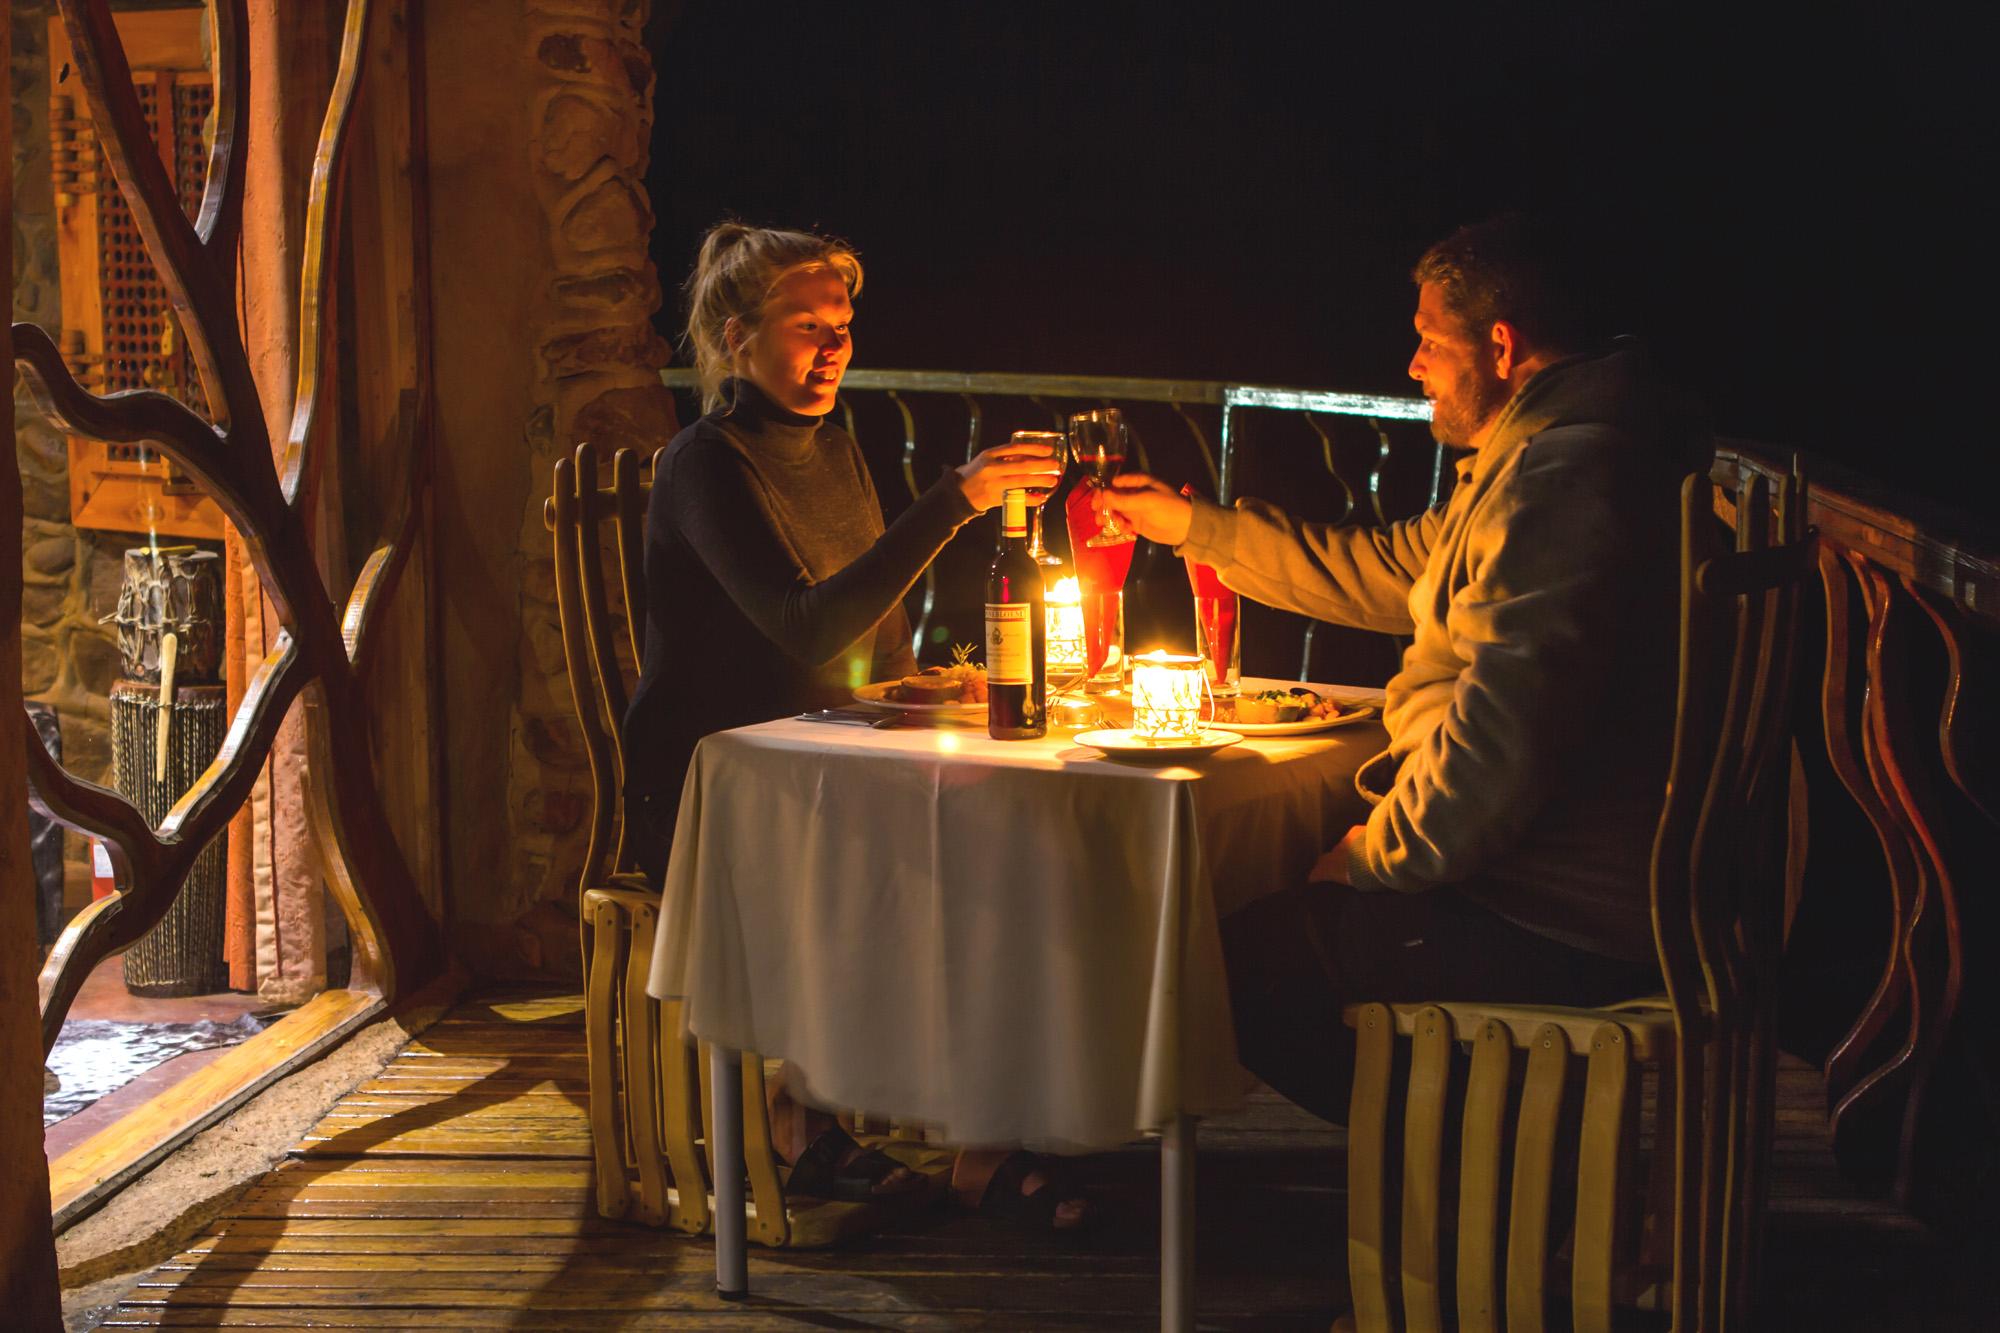 Drakensberg honeymoon - Private dining experice on the deck of your cave